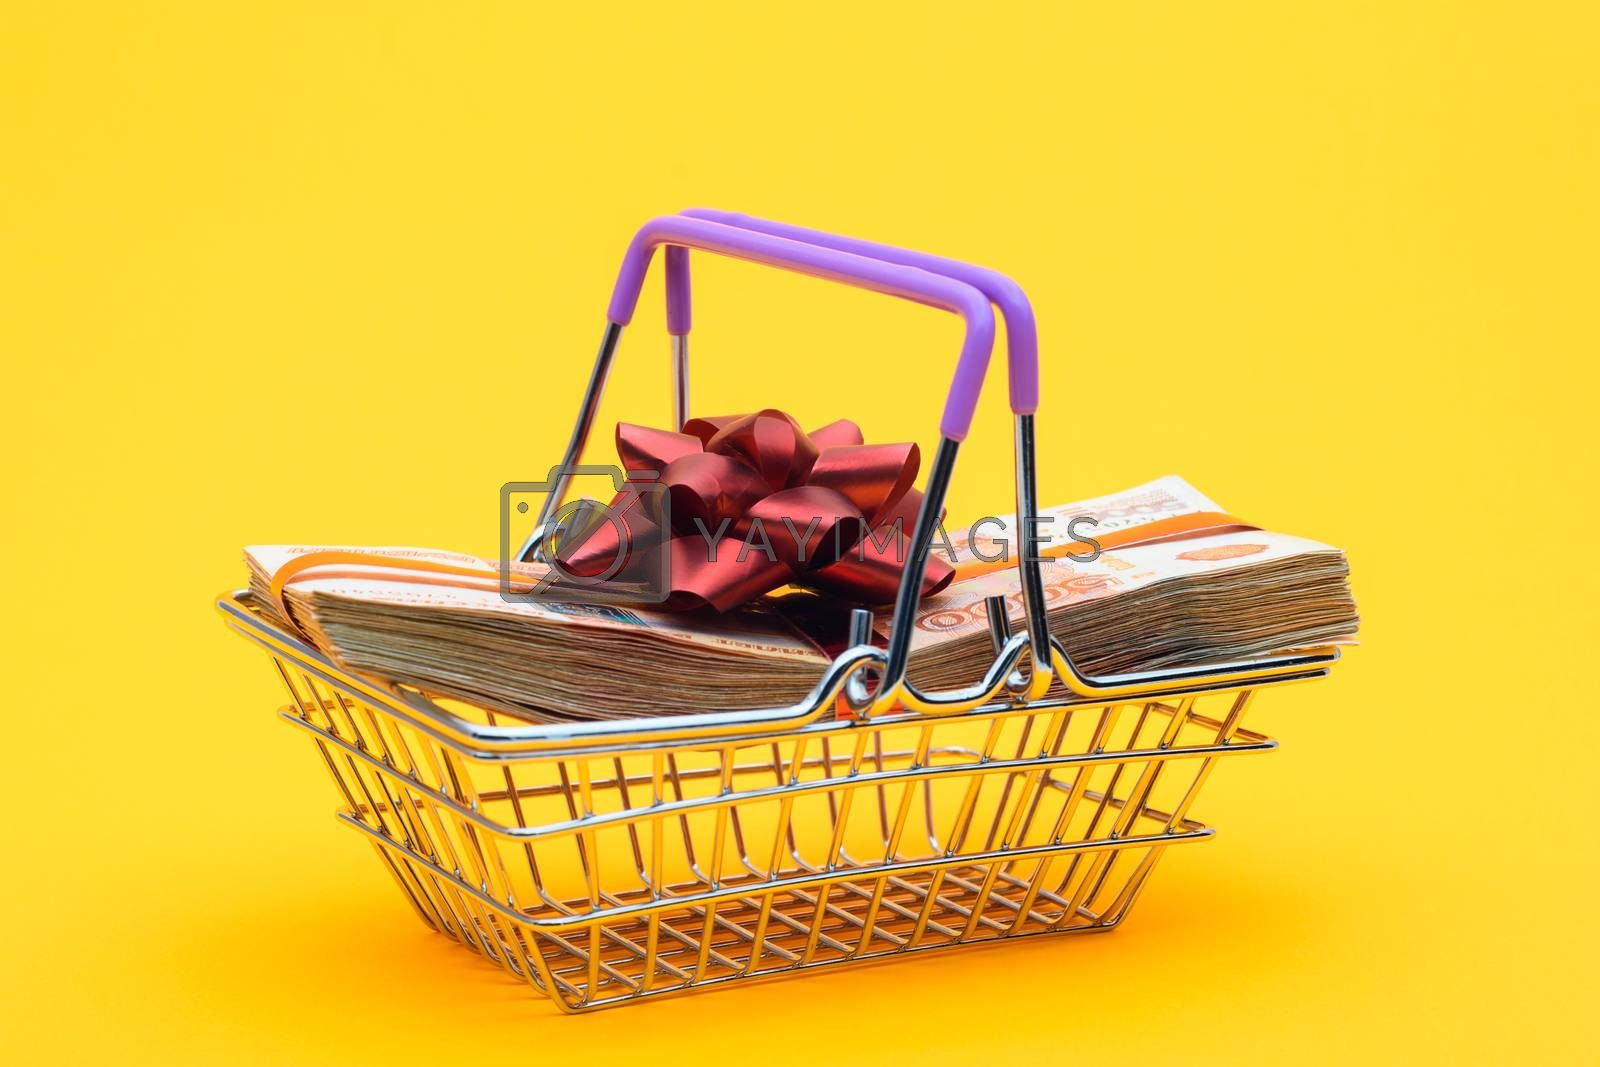 In the grocery basket is a bundle of money with a red bow